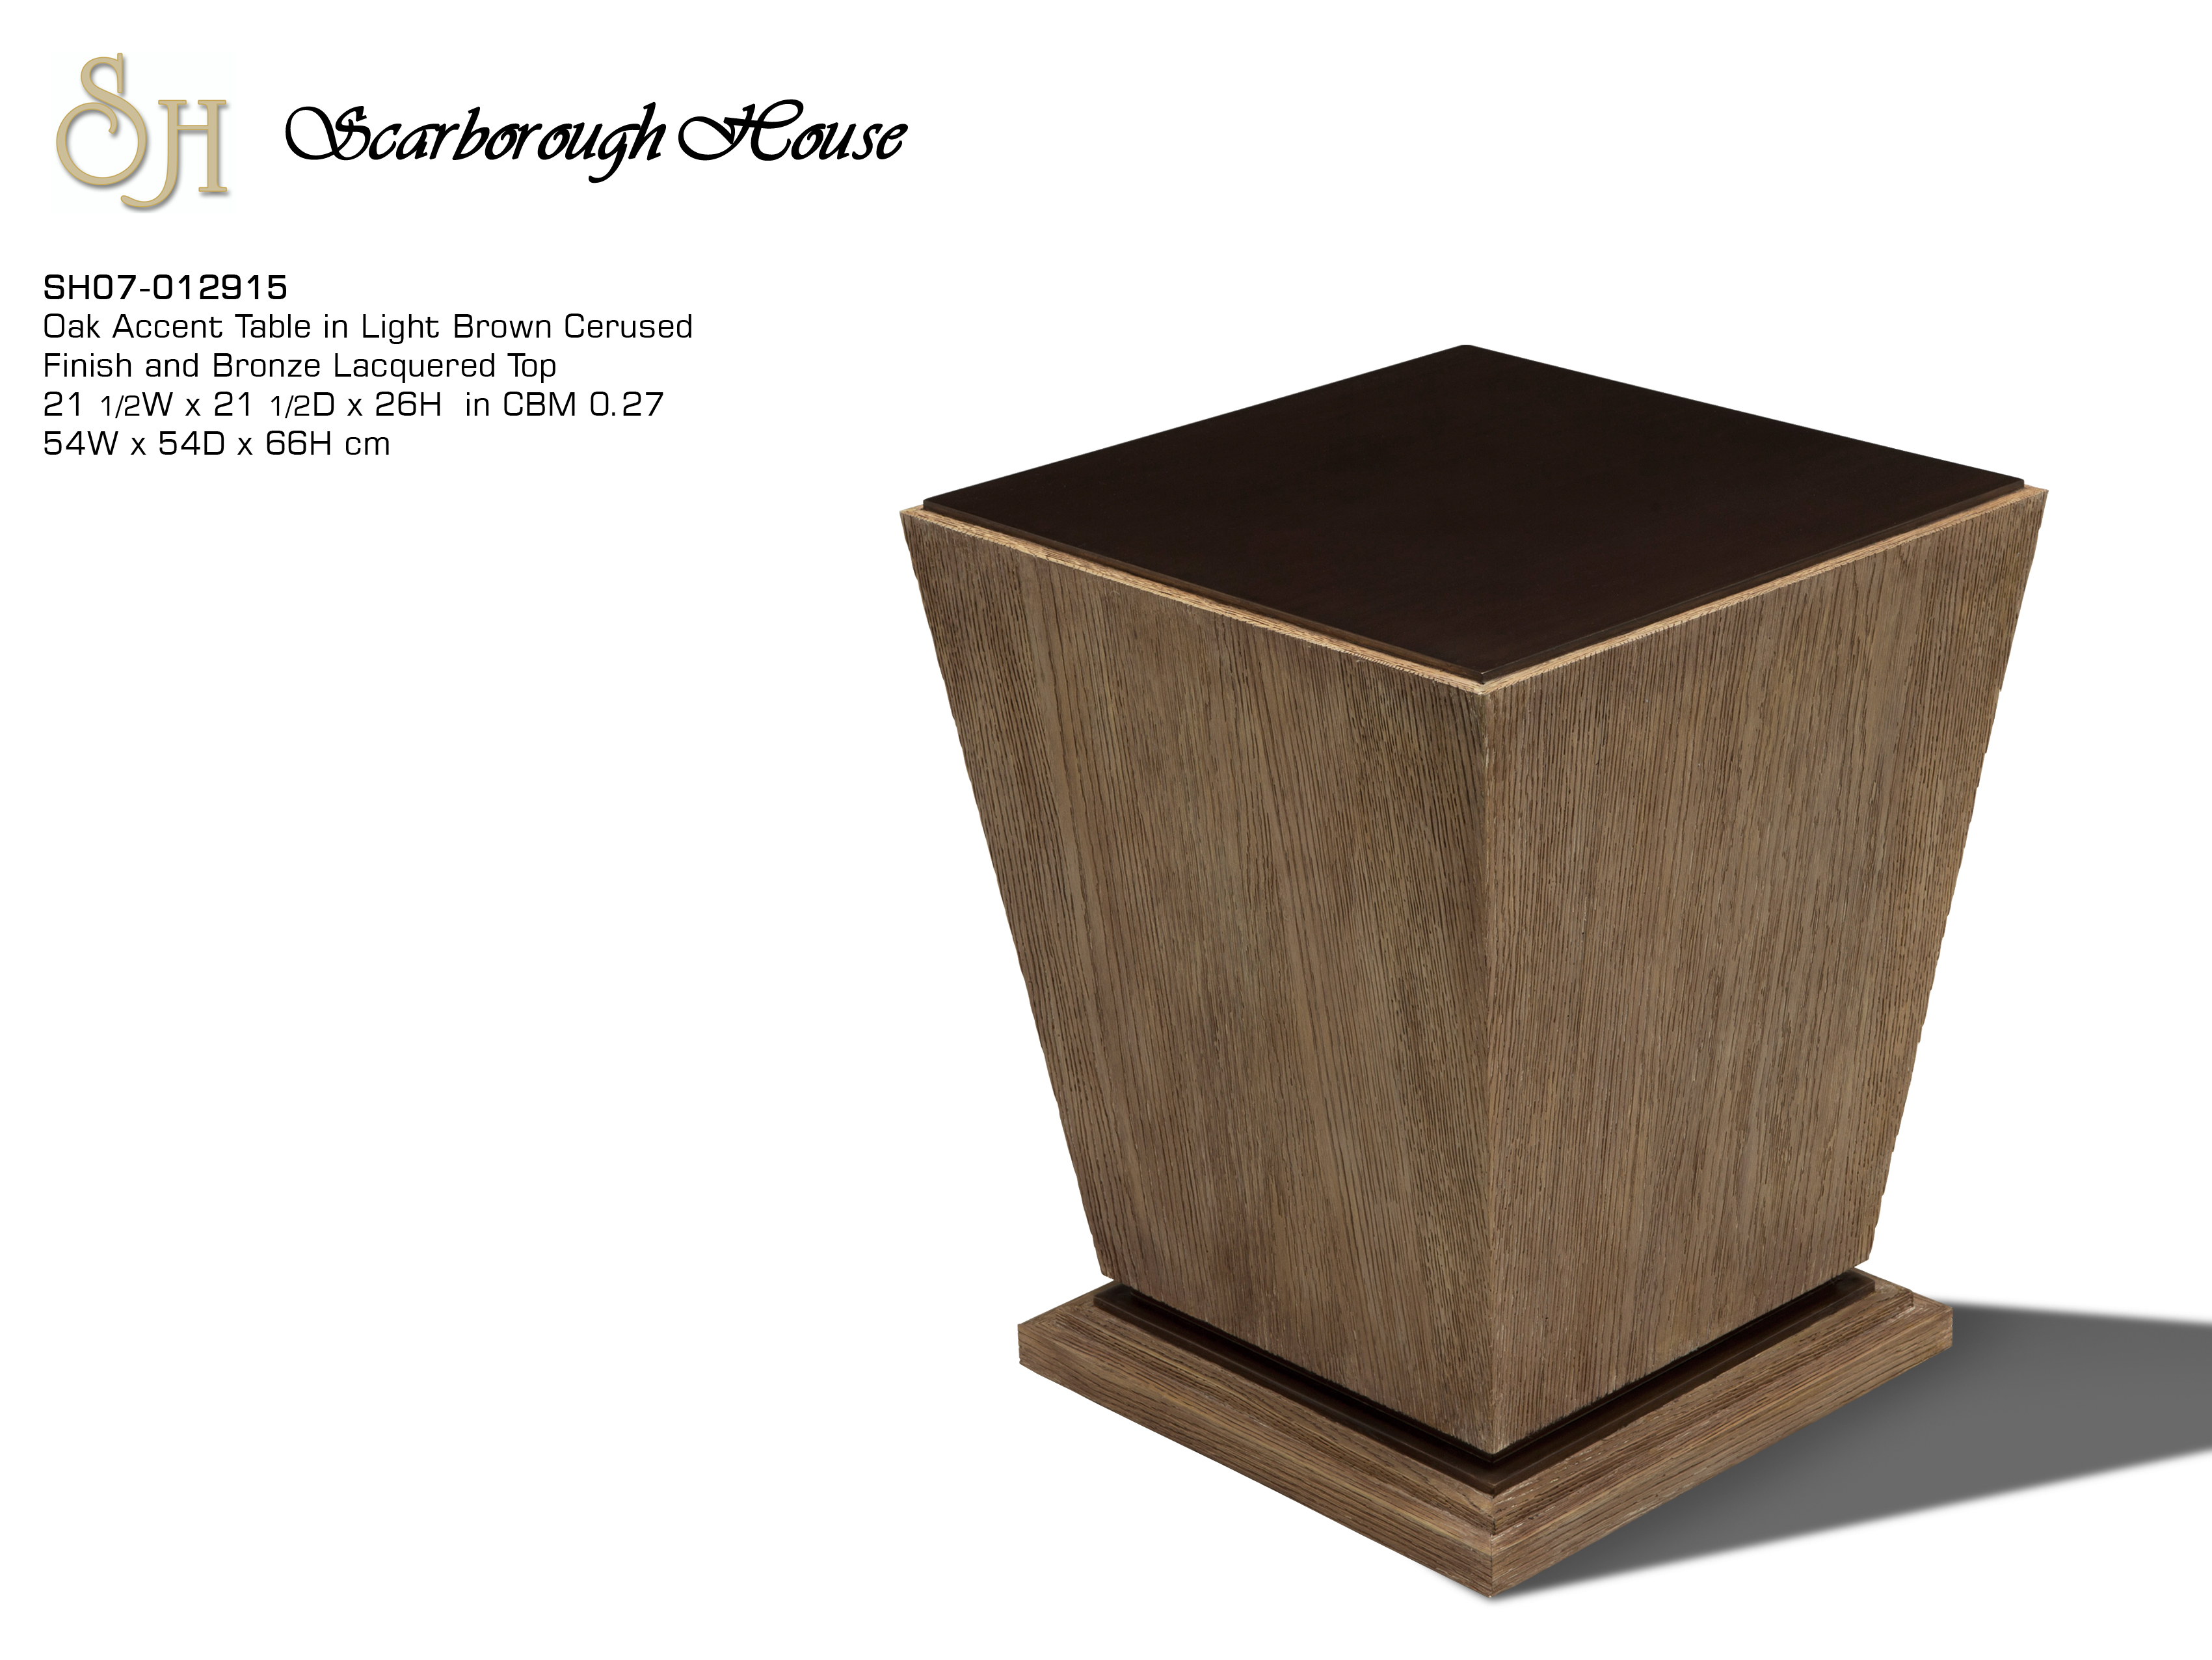 accent table scarborough house light oak tables click here for printable metal side with wood top tall end laminate door threshold mirrored desk stand alone umbrella base tray